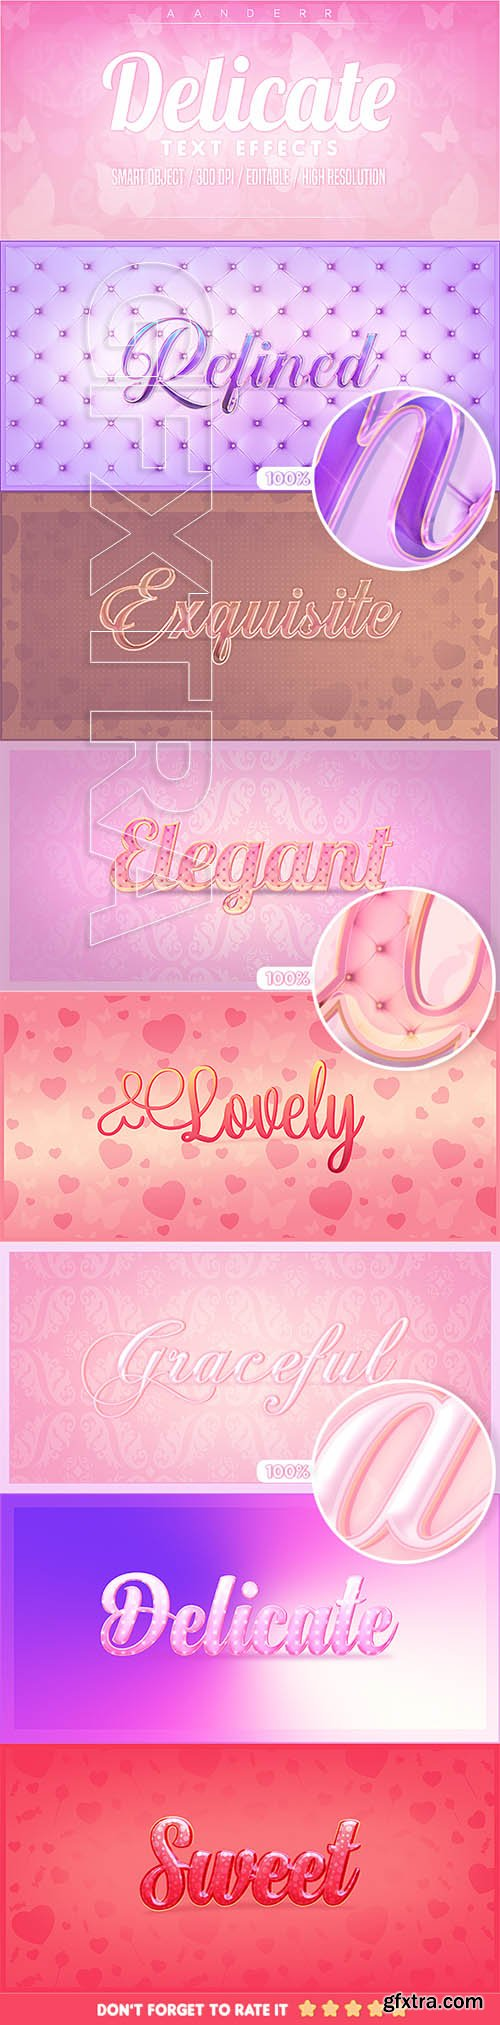 GraphicRiver - Delicate Photoshop Text Effects 22931110